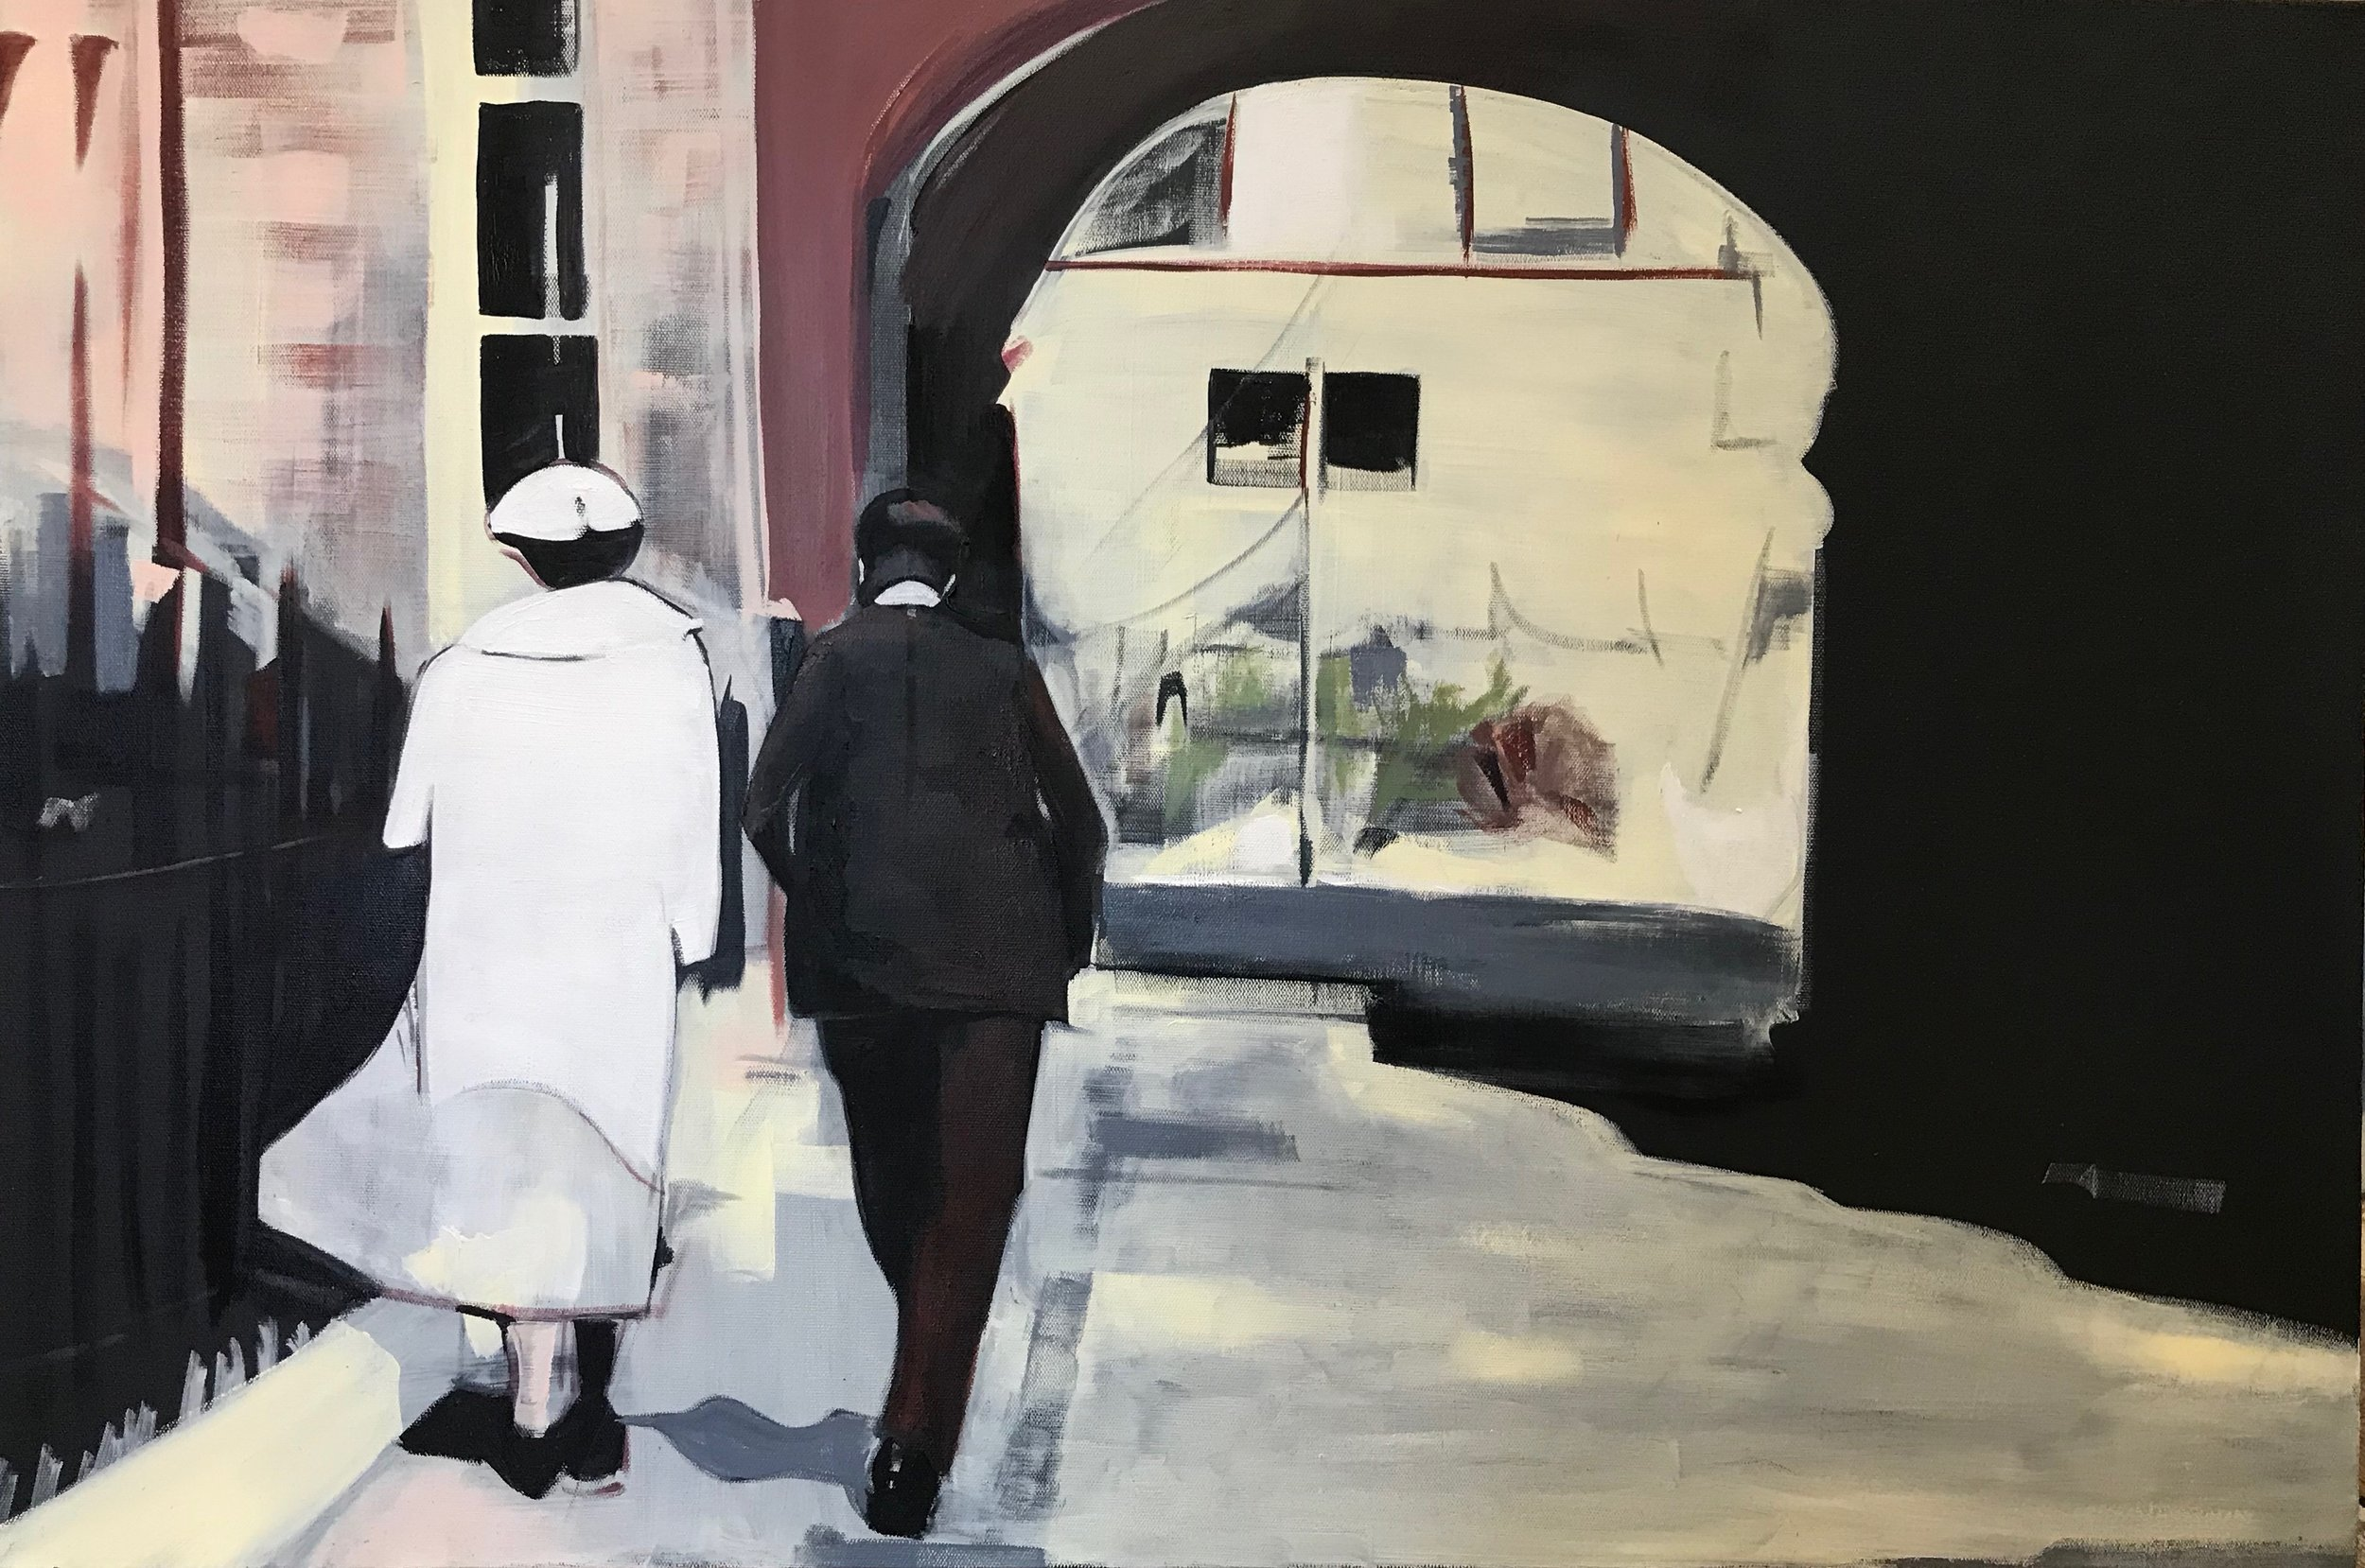 WALK THIS WAY. OIL ON CANVAS. 60 X 90